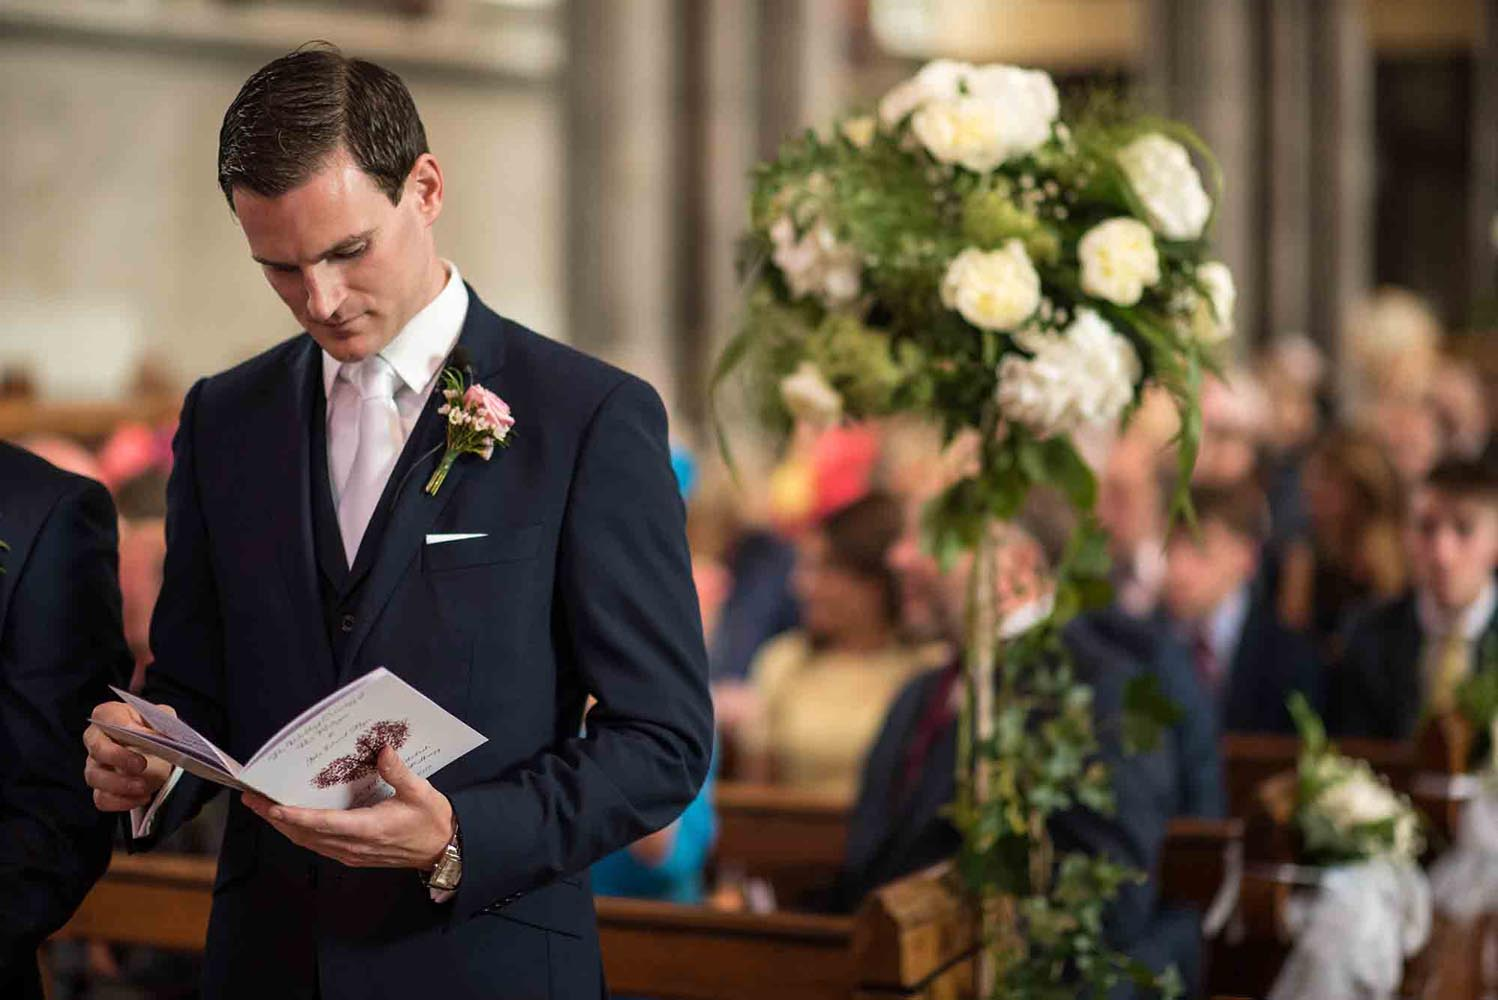 Groom looking through wedding booklet at the church